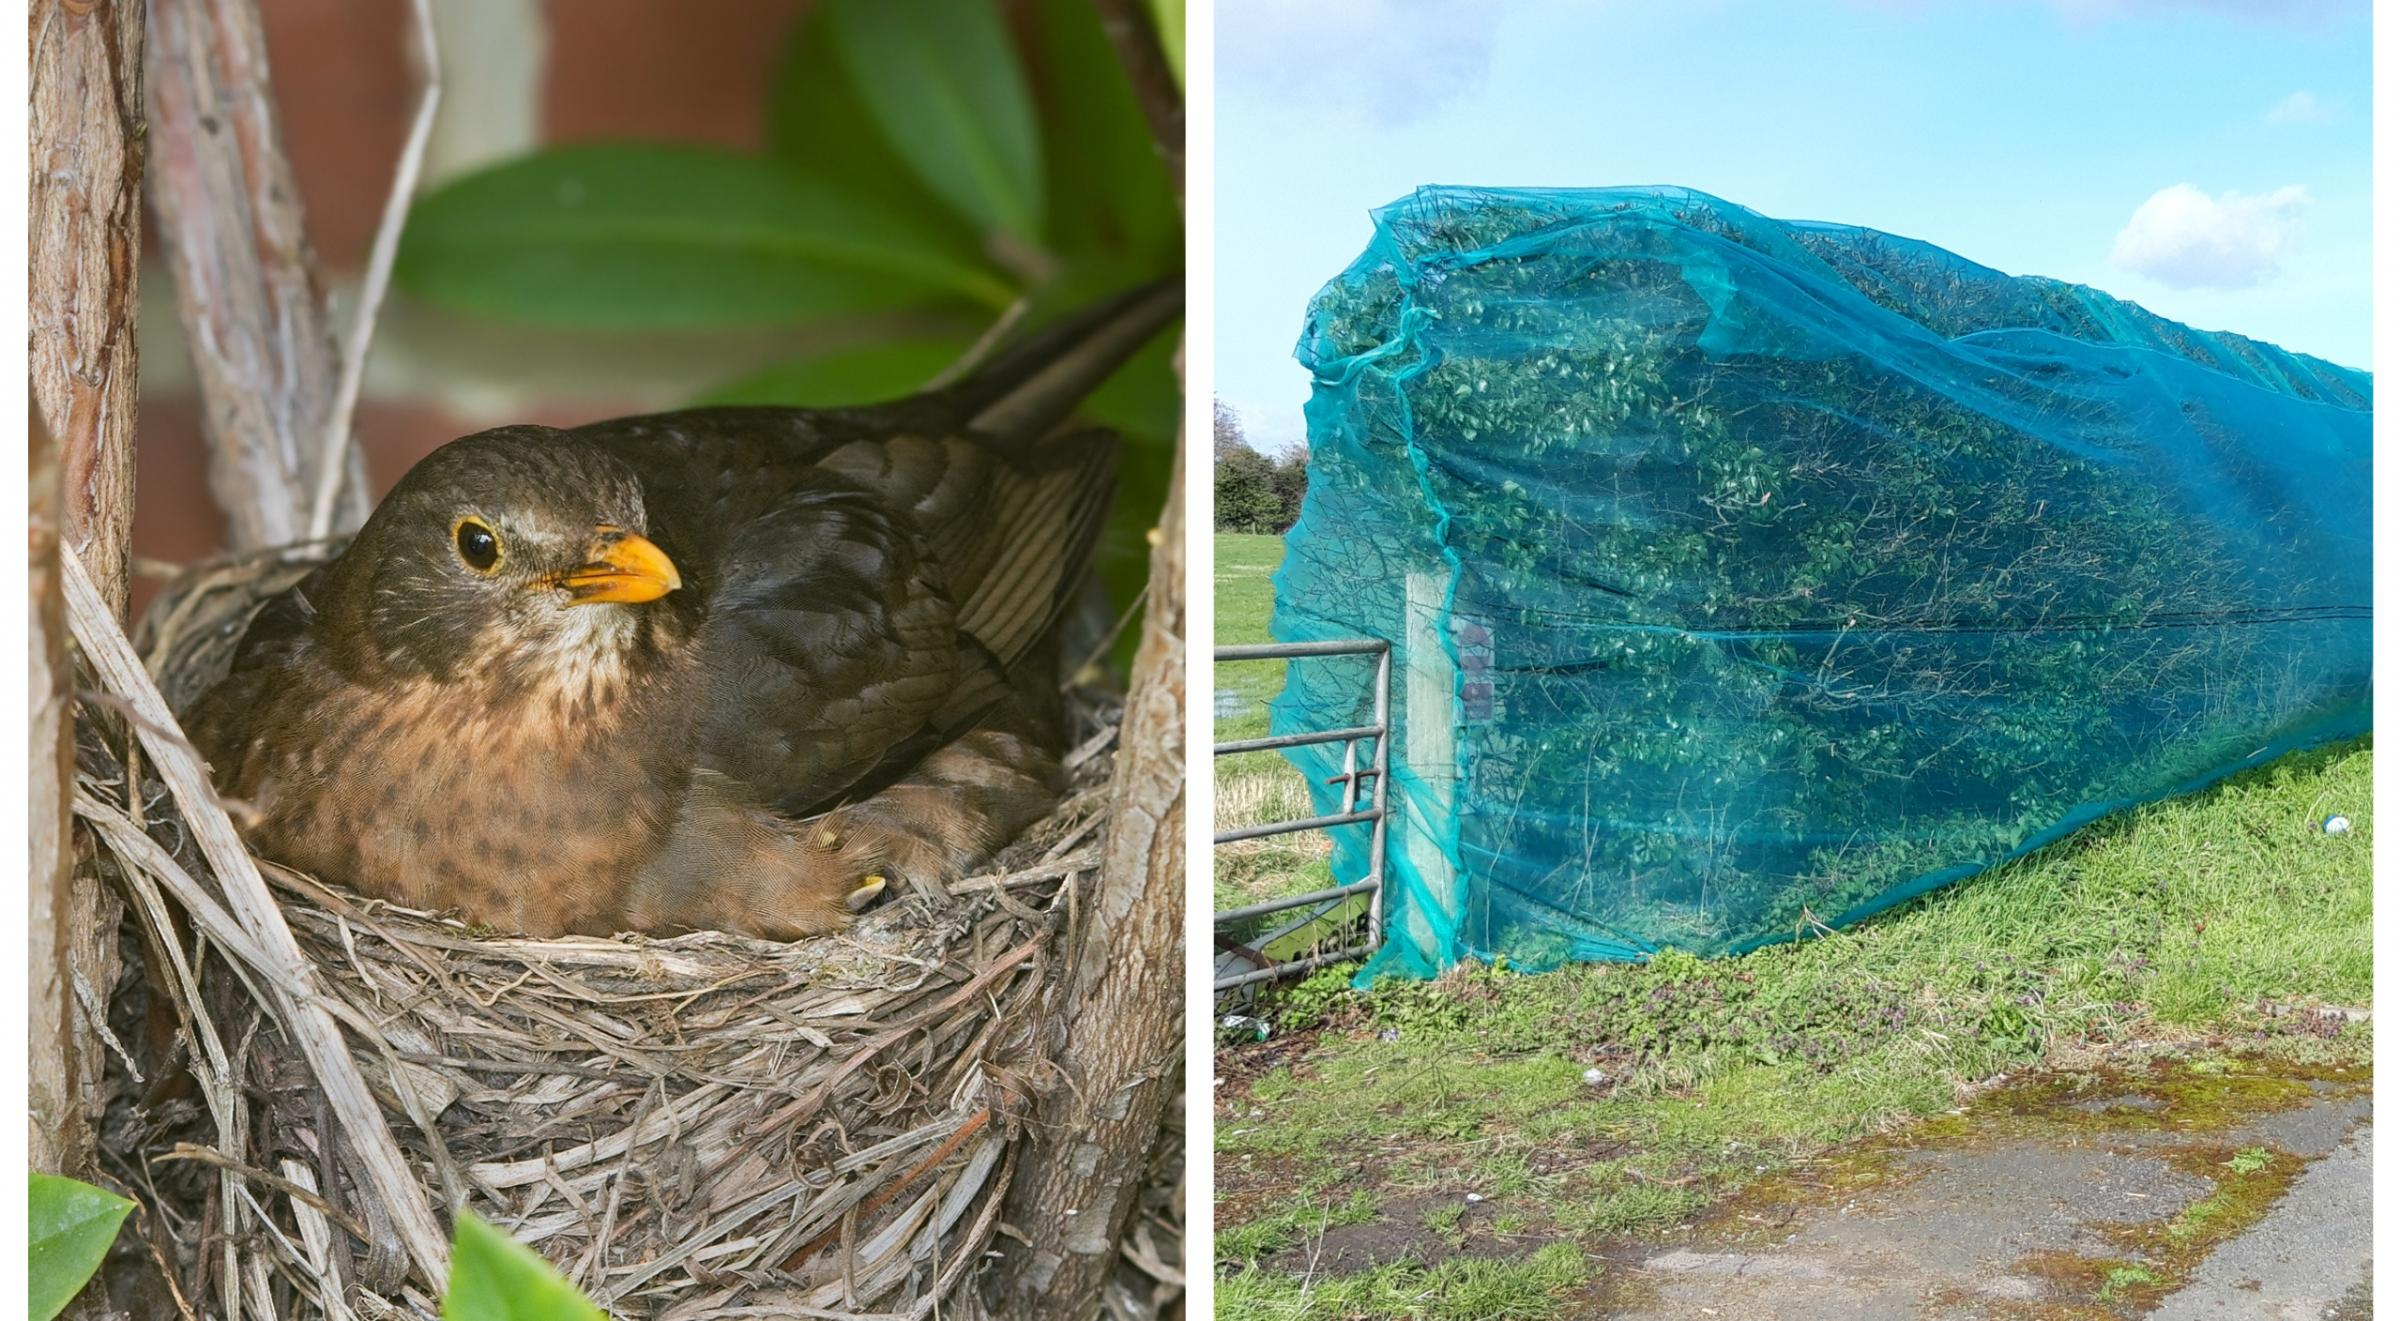 Redrow and Taylor Wimpey are using nets to stop birds from nesting at their Wrexham Road site.